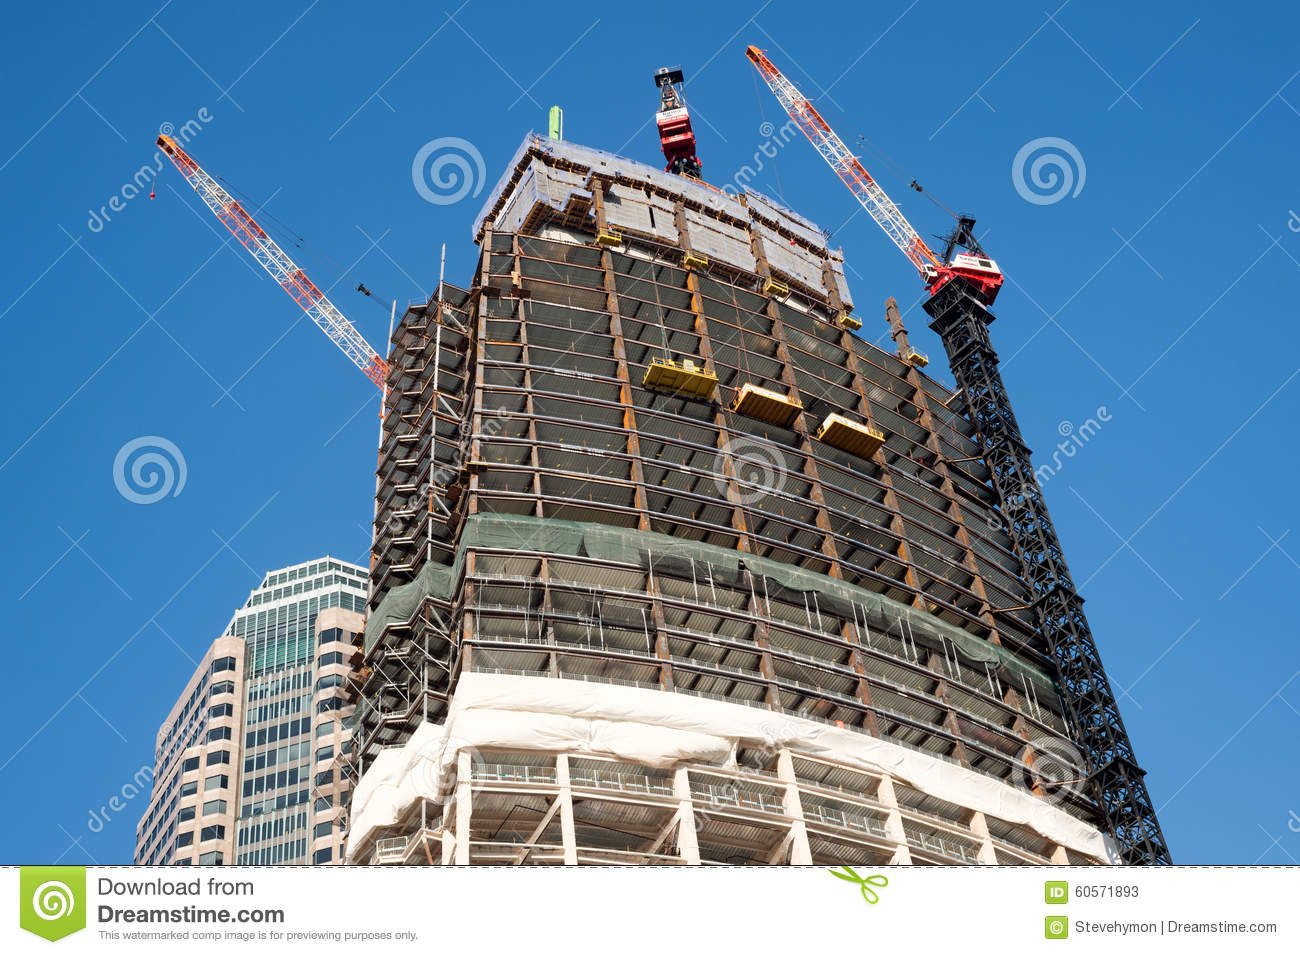 Wilshire Grand Tower construction in Los Angeles